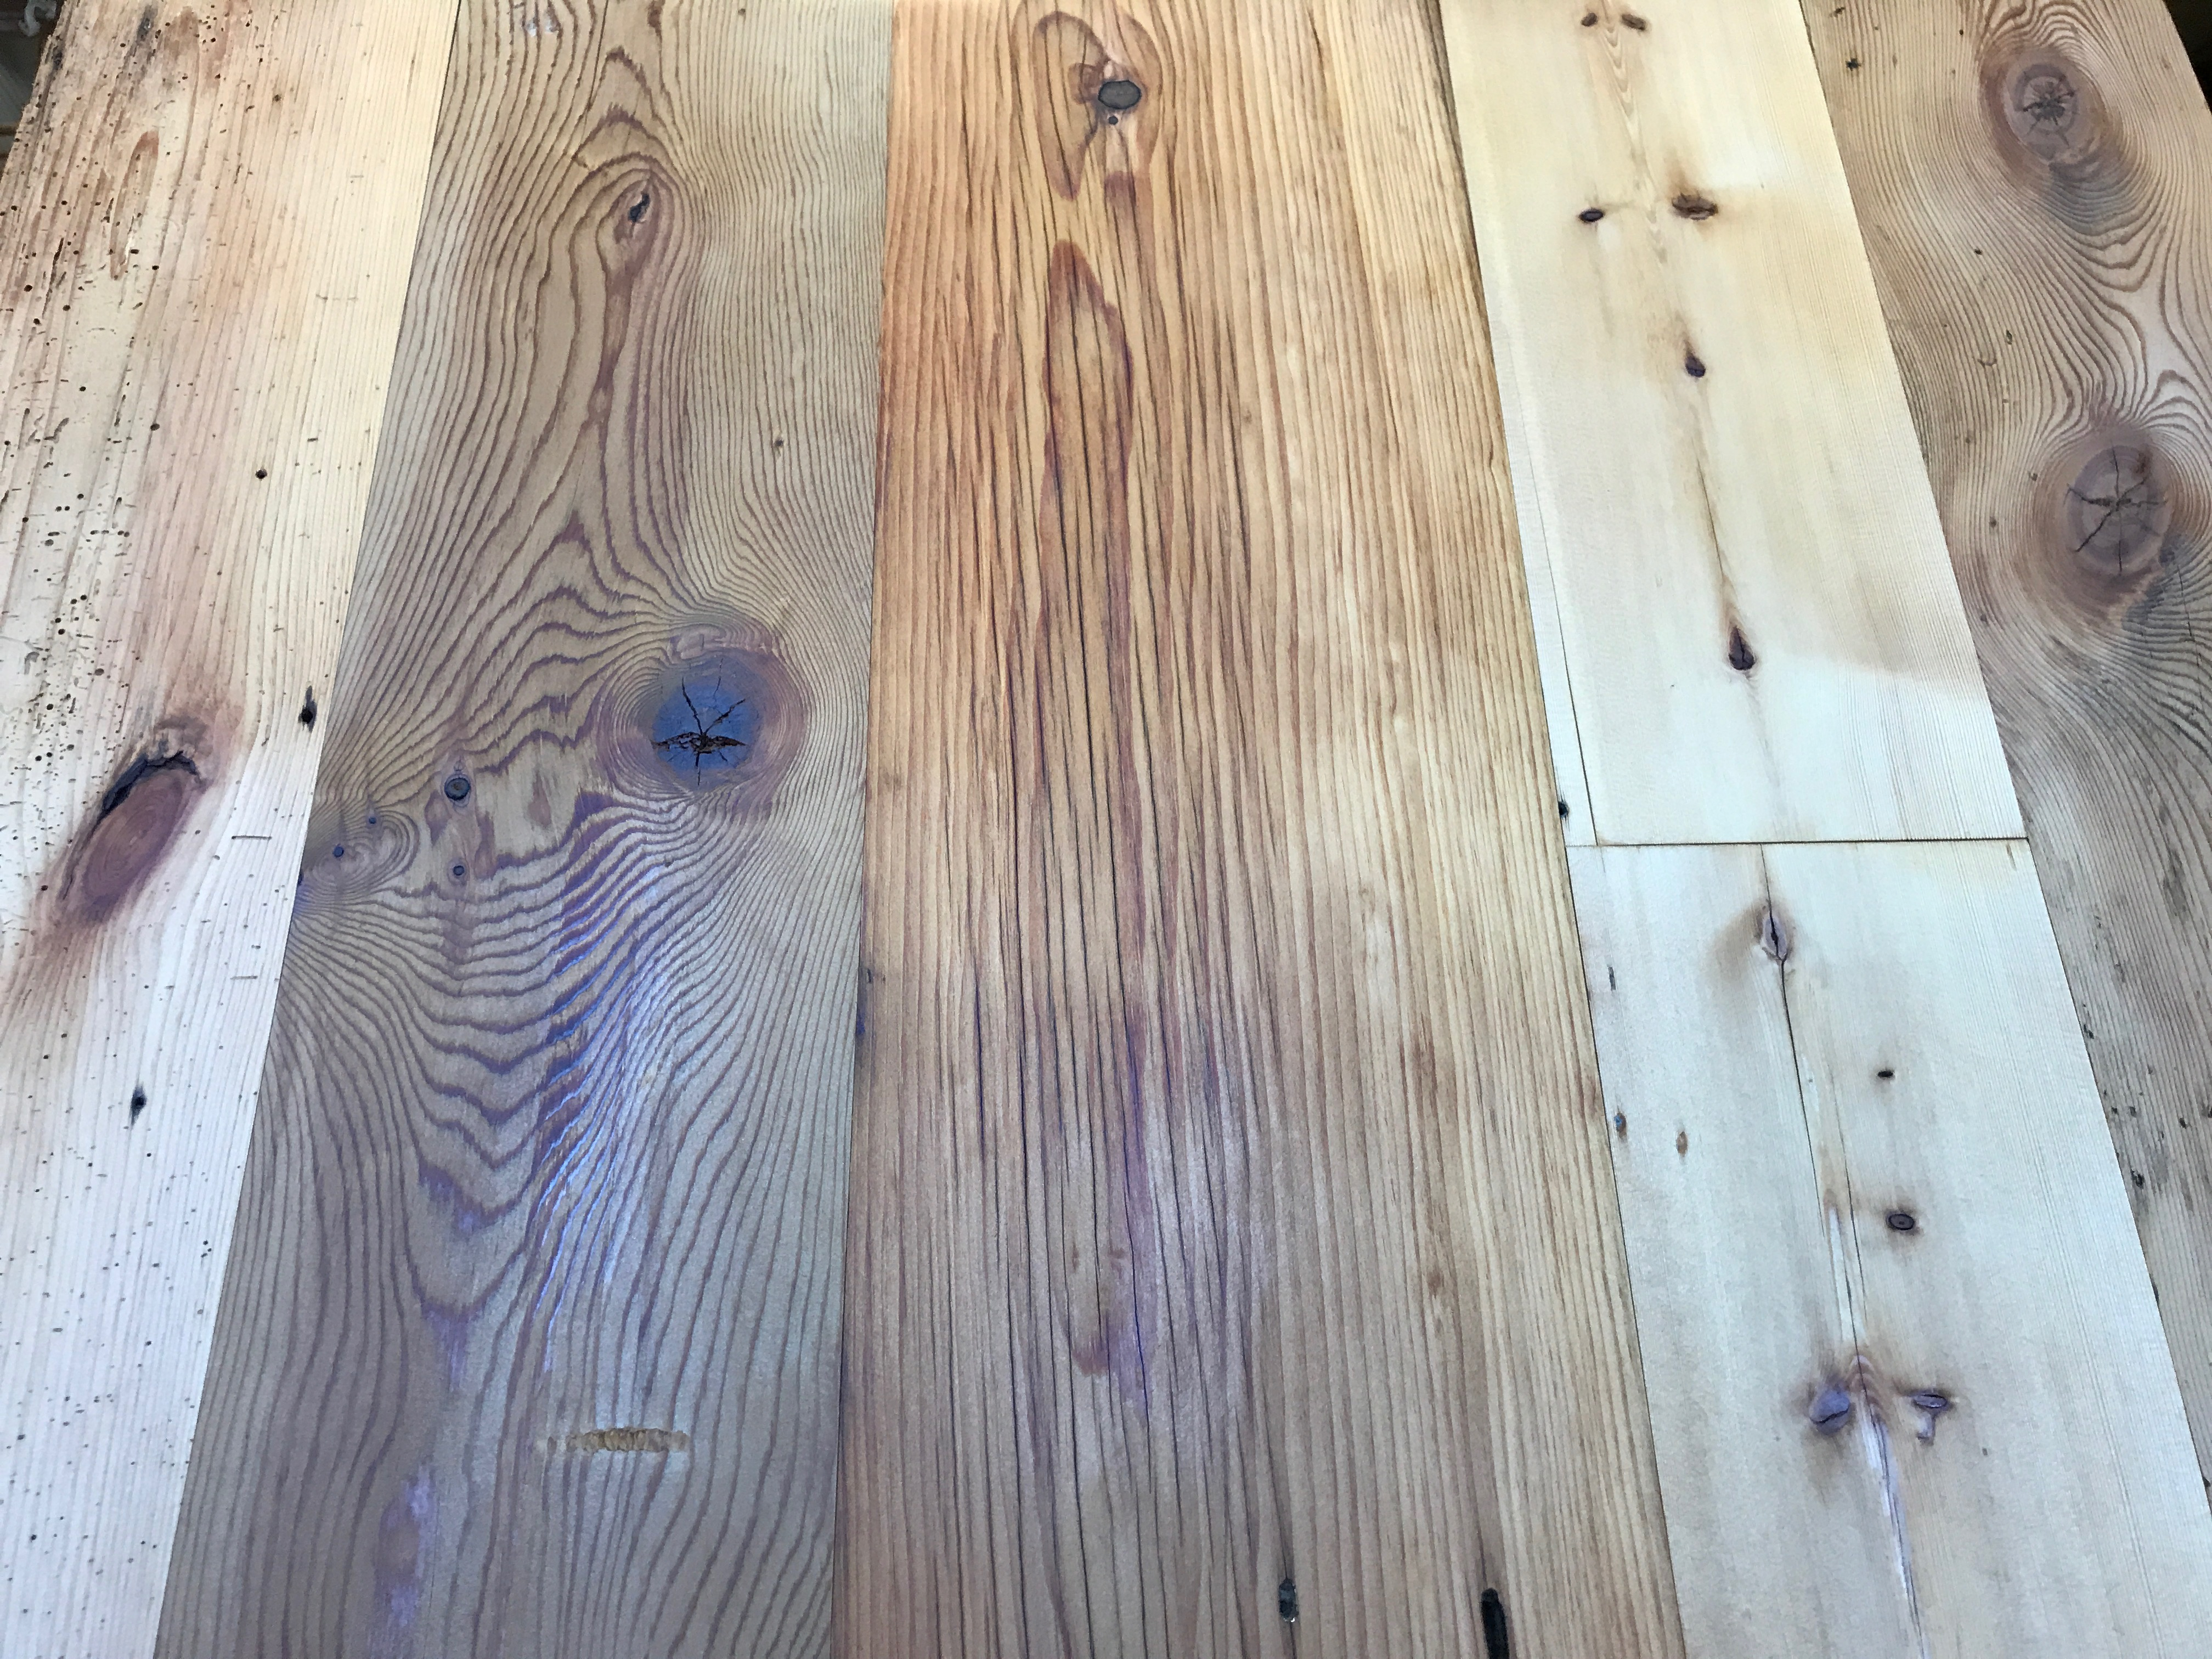 Residential flooring made from reclaimed Bigelow Range lumber in Cumberland Foreside, Maine